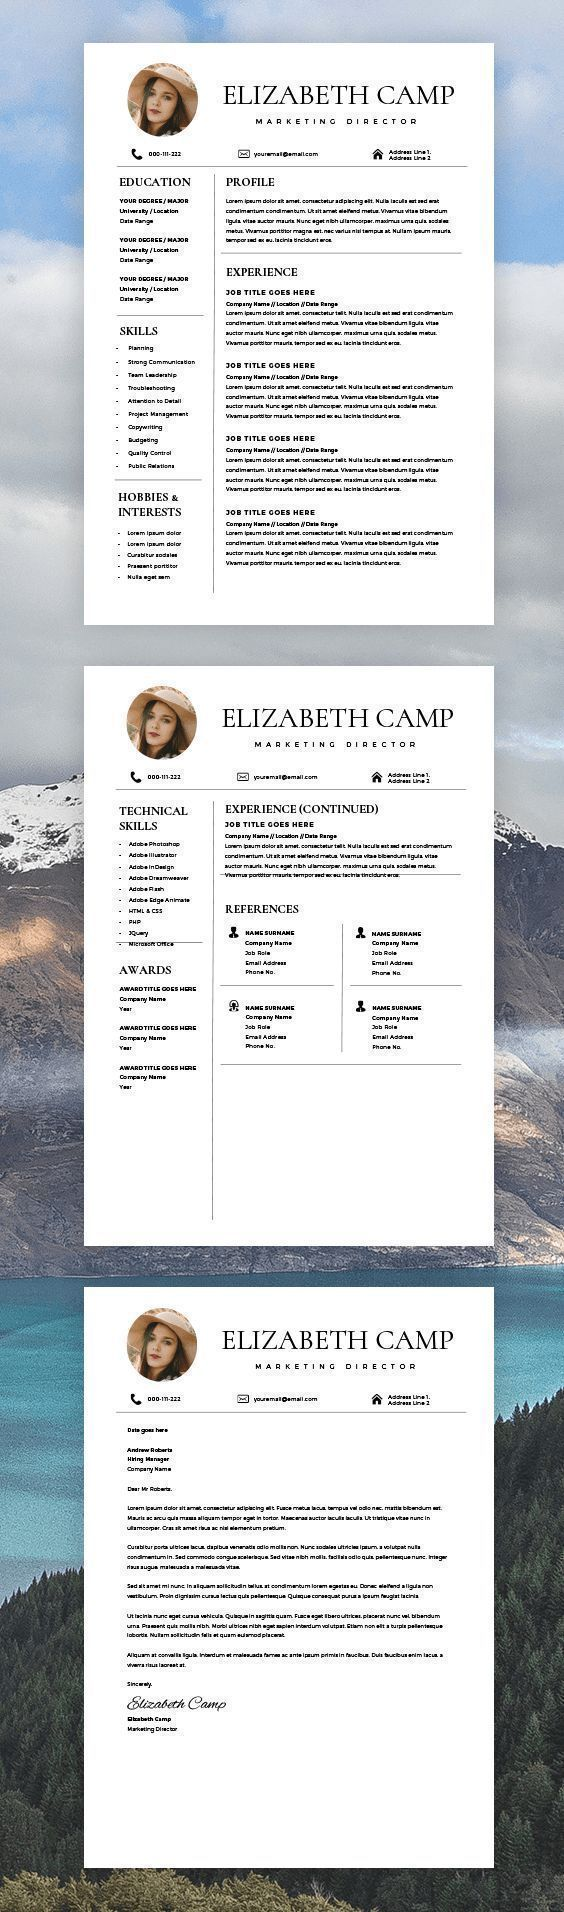 Resume Template with Headshot Photo Cover